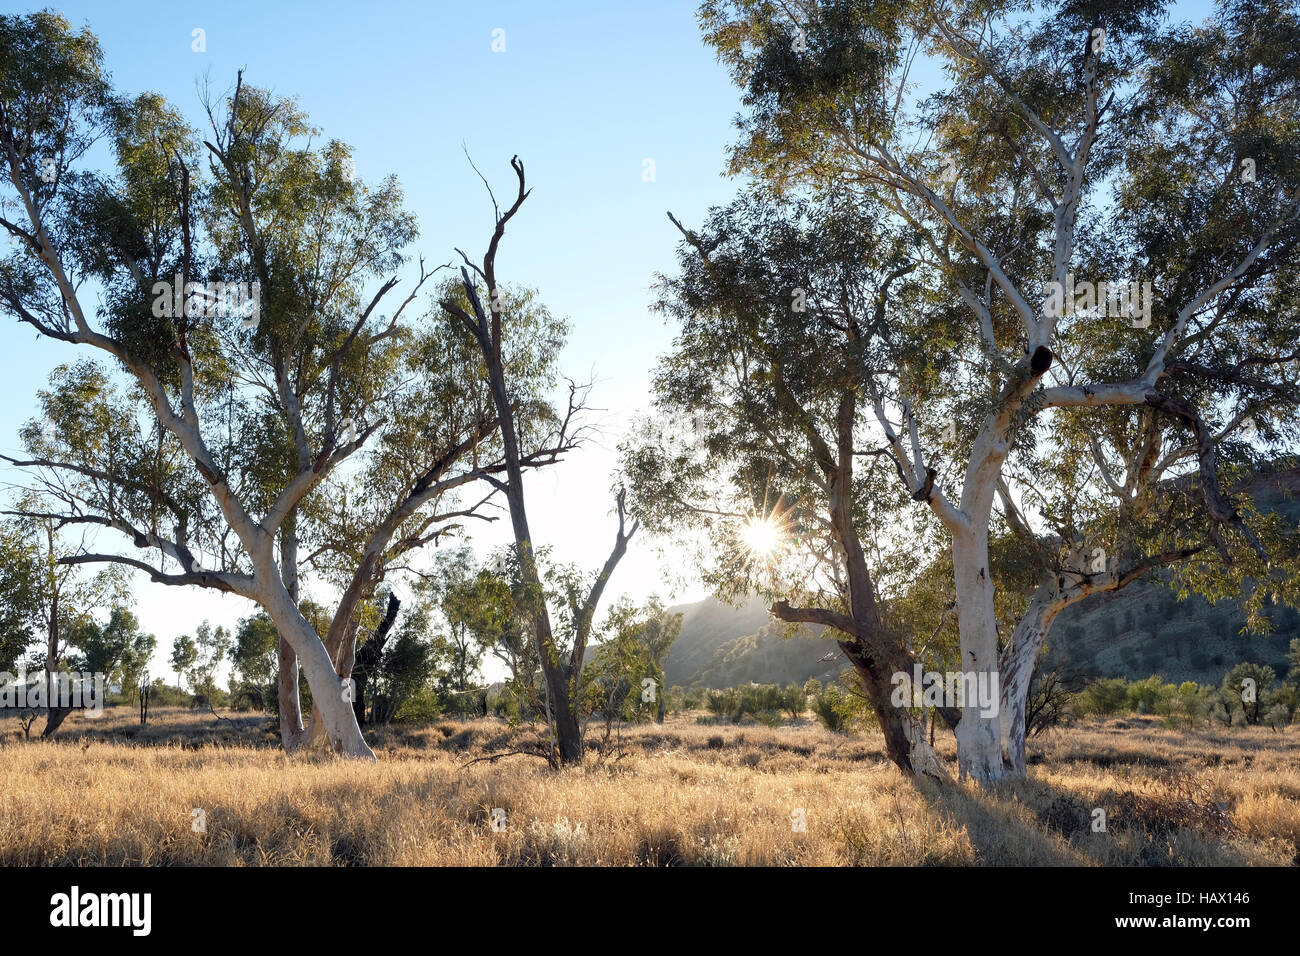 Gum trees in Honeymoon Gap, MacDonnell Ranges, Northern Territory, Central Australia - Stock Image